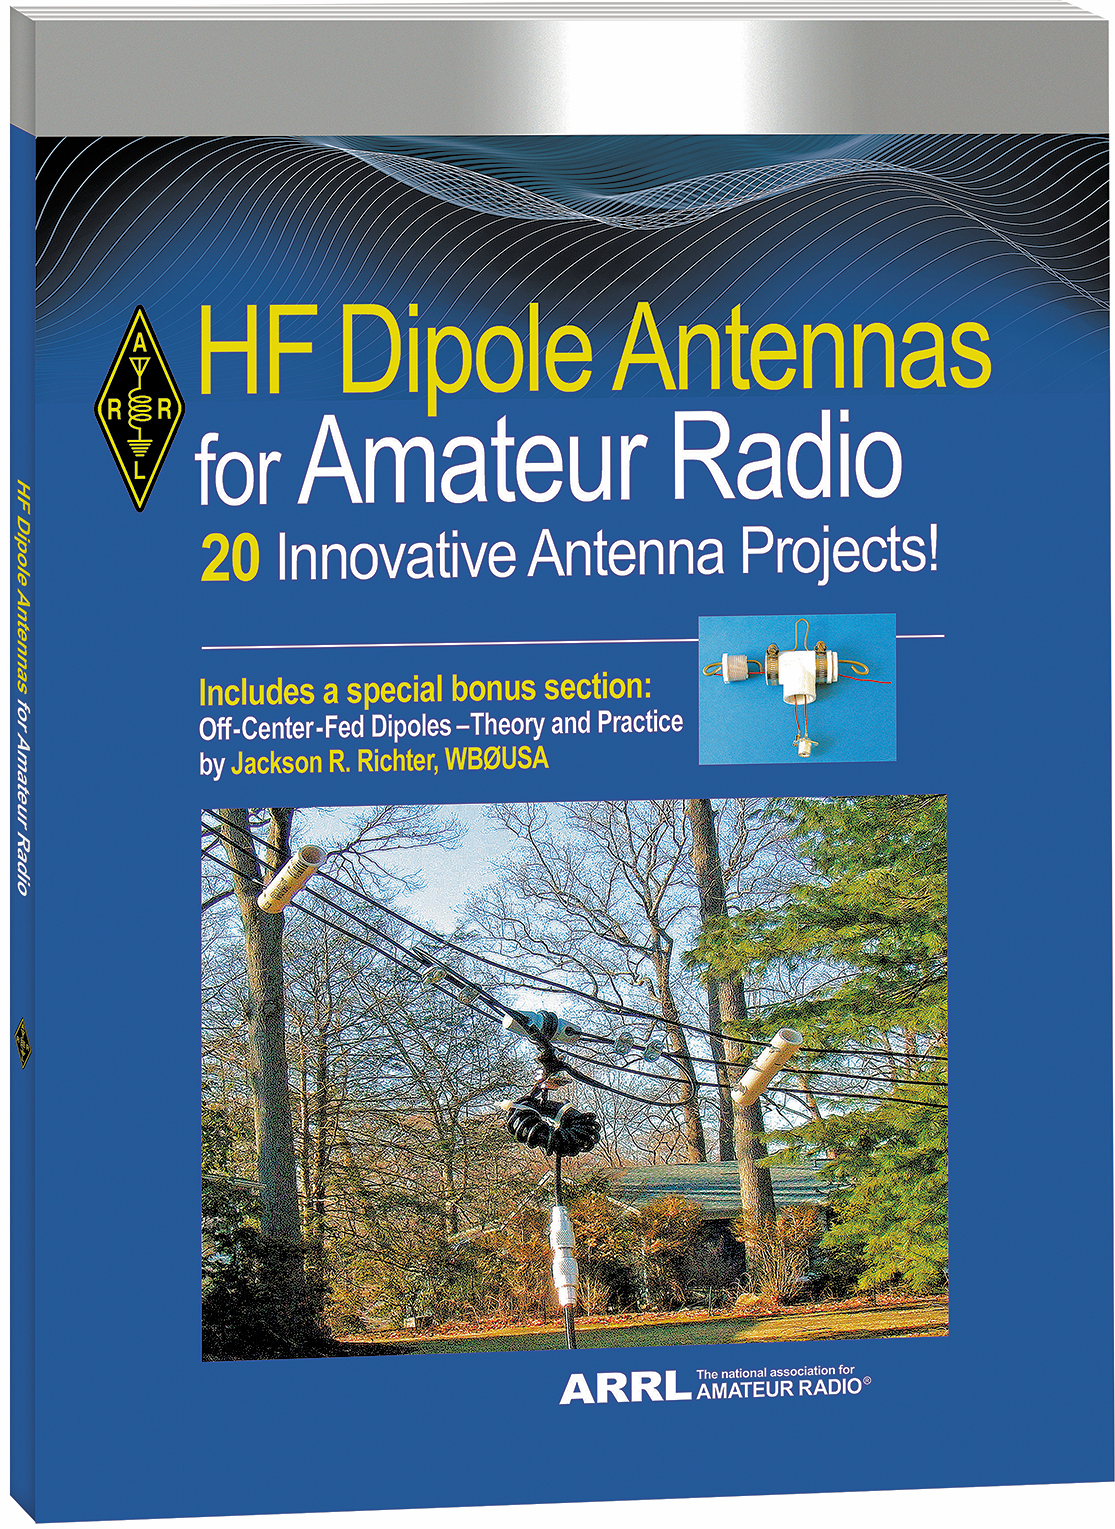 New Book HF Dipole Antennas for Amateur Radio Now Shipping